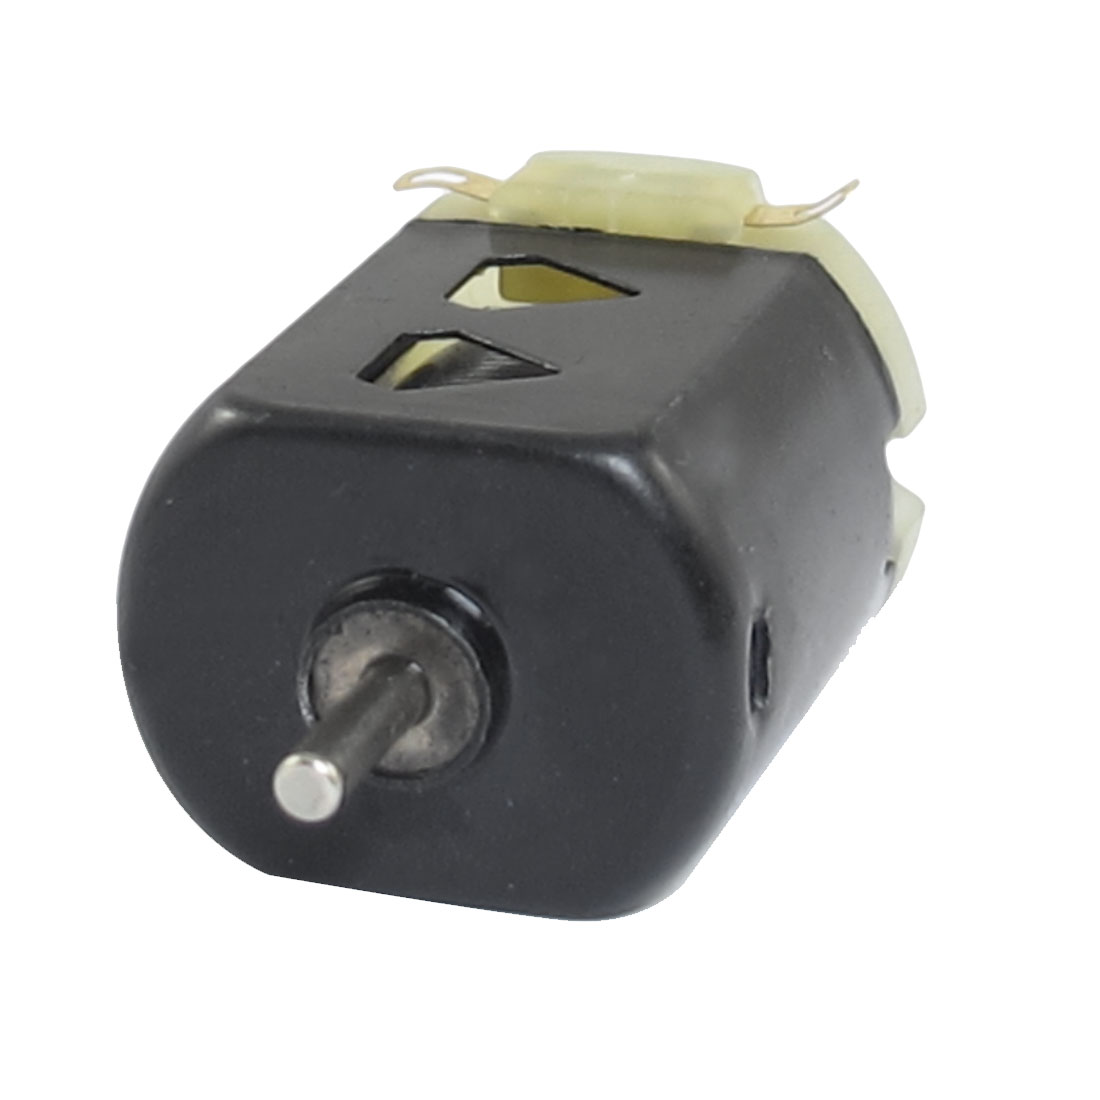 1.5V DC 9000RPM 400mA Black Flat Electronic 130 Motor for Four-wheel Car